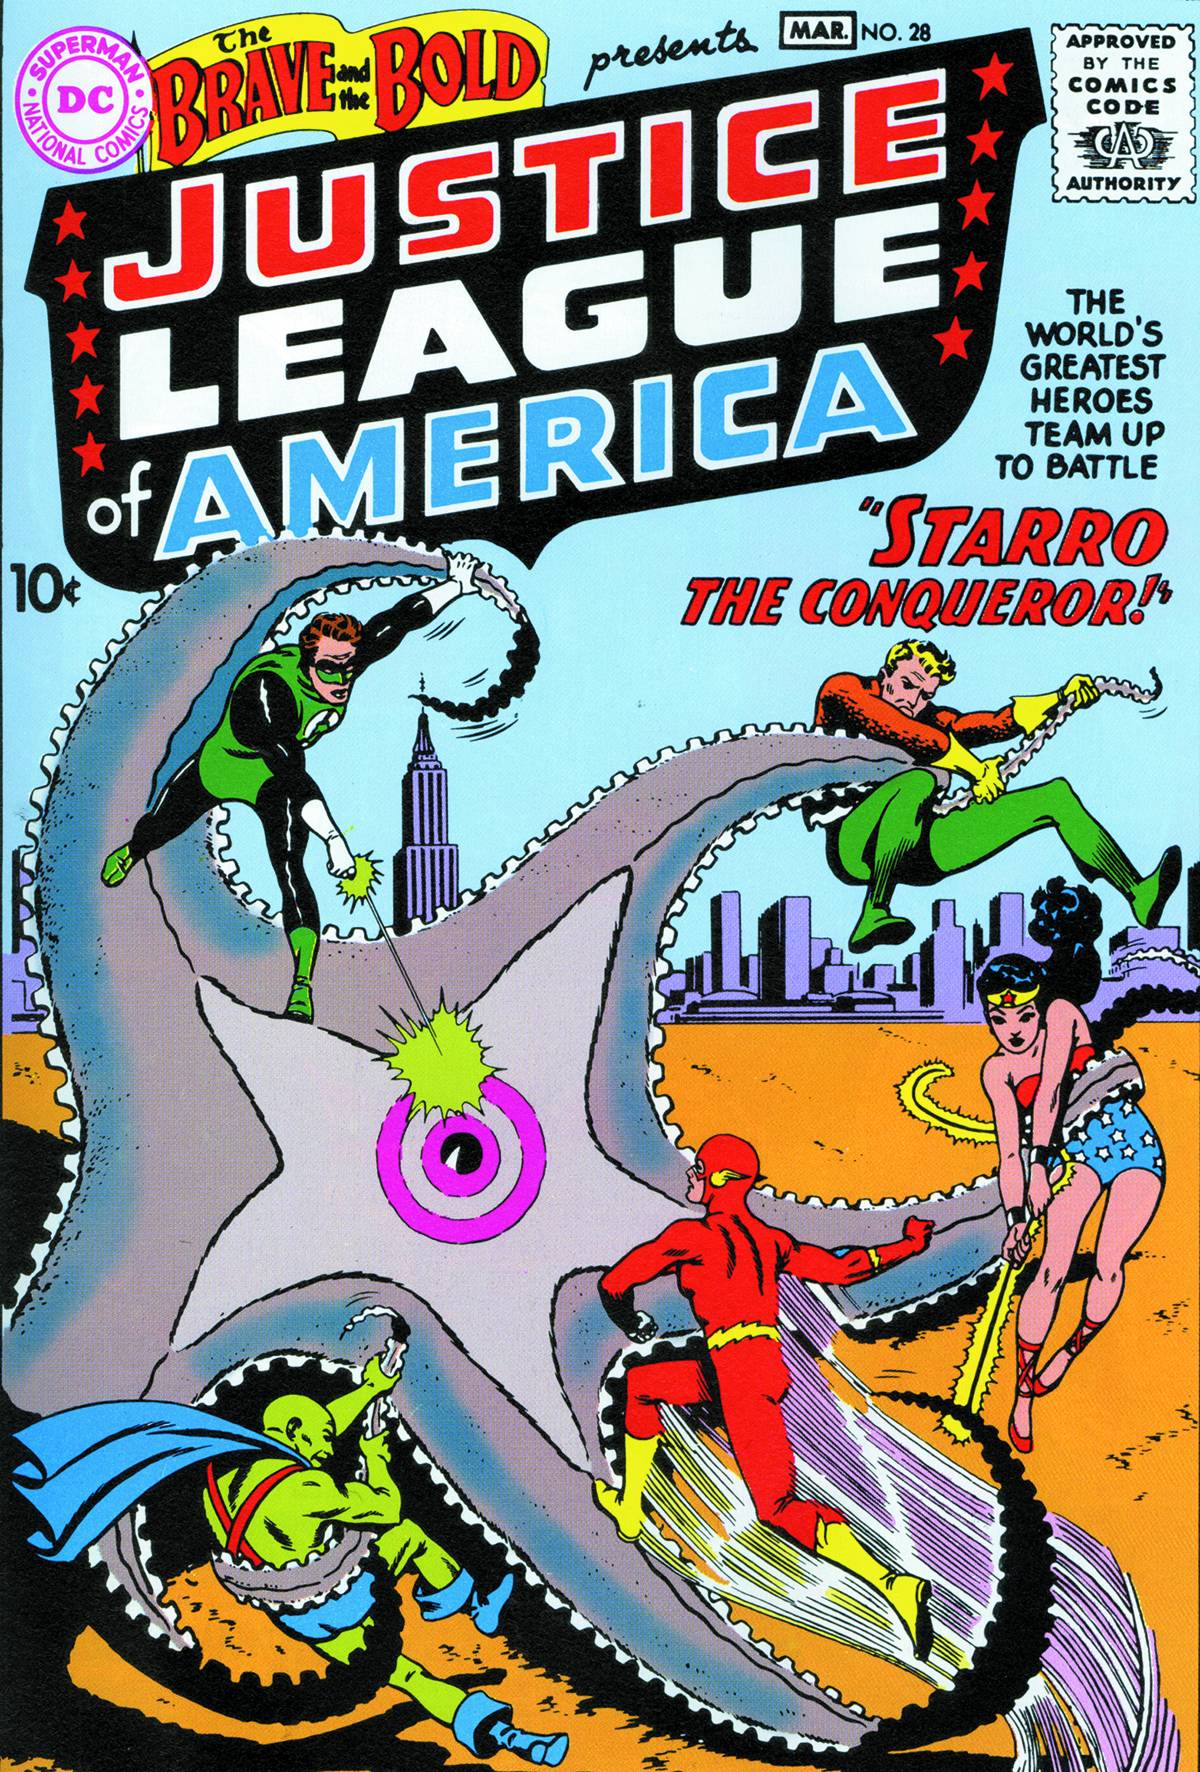 The Brave and the Bold #28. Por Mike Sekowsky, Murphy Anderson y Jack Adler.